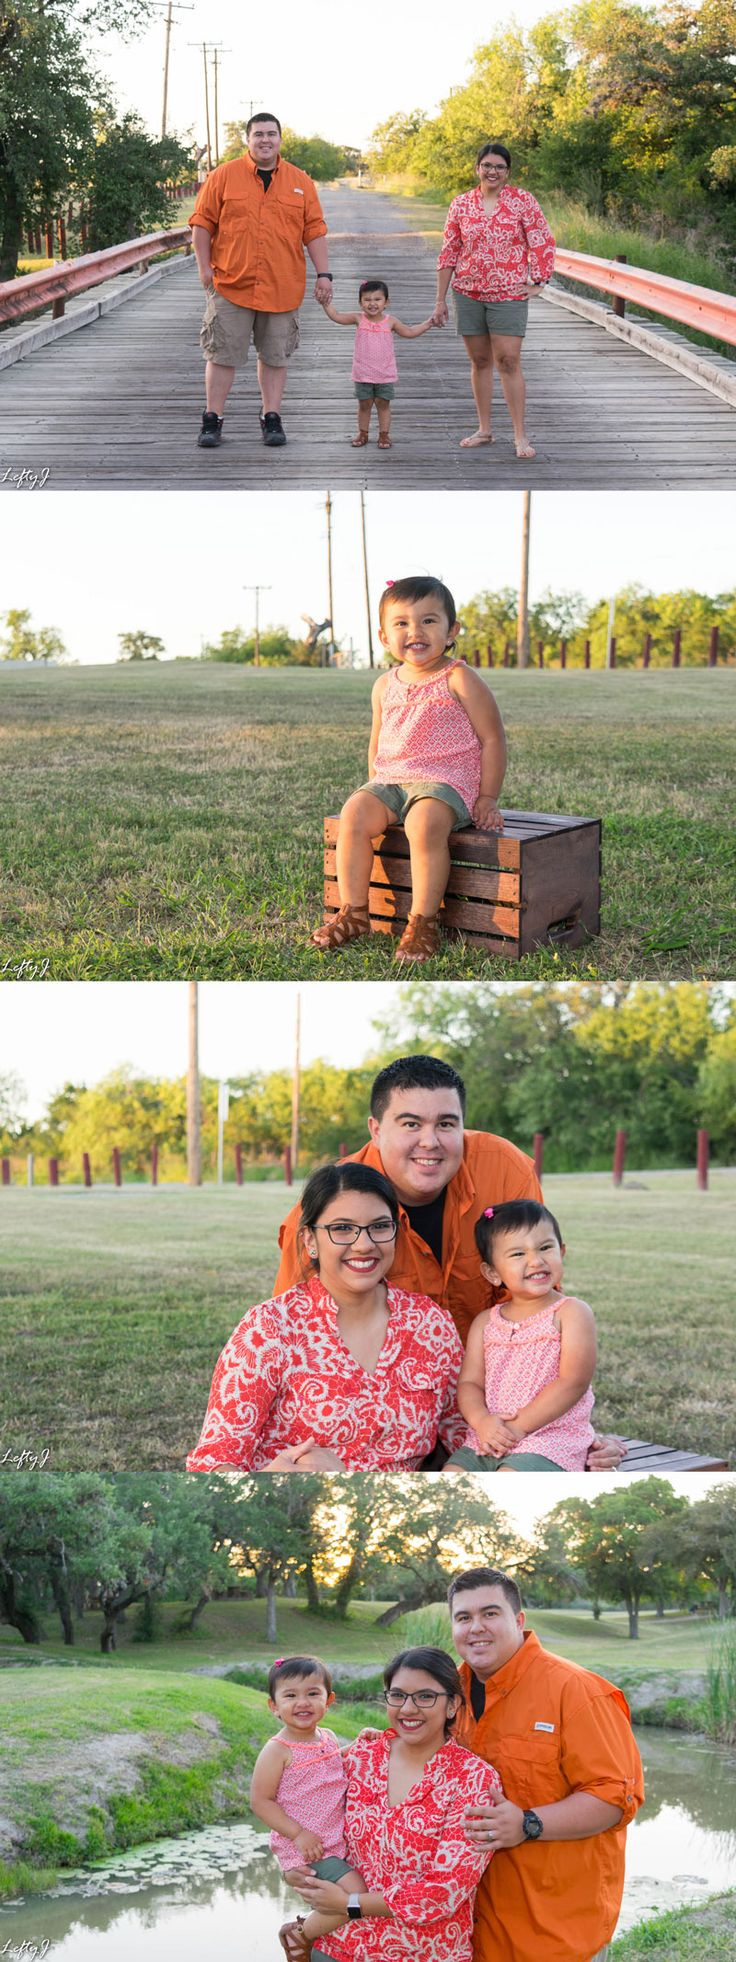 Another shoot with the wonderful Moreno family and the adorable Alayna. #corpuschristiphotography #corpuschristiphotographer #familyphotos #familypictures